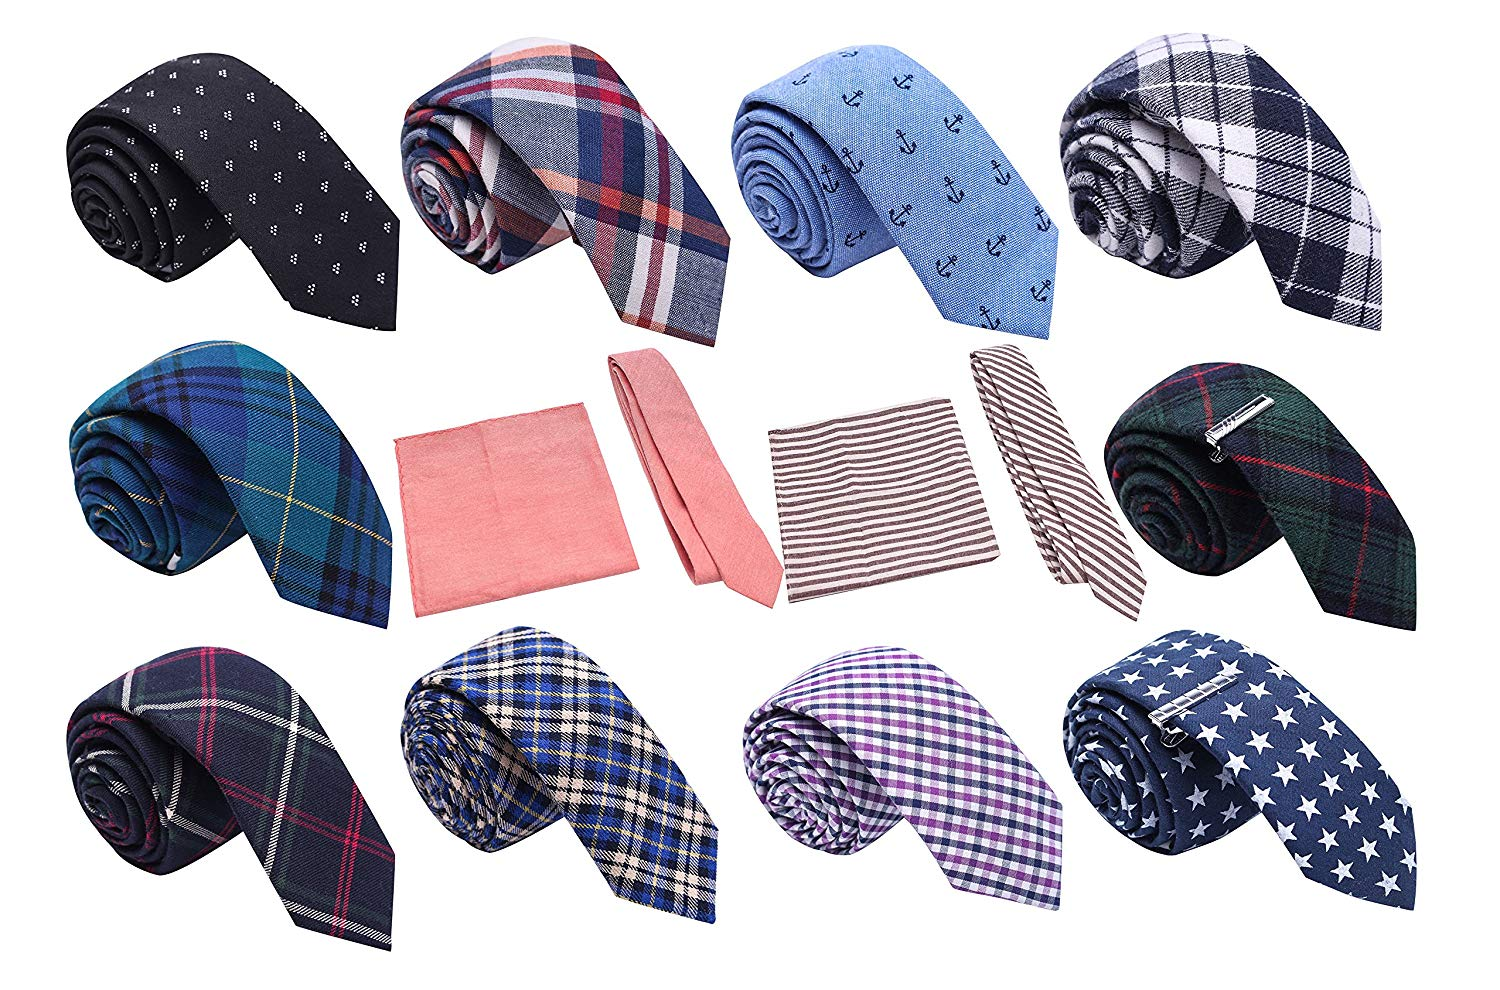 4dfd4442815a Get Quotations · Skinny Tie Madness Fashion Forward Bundle of 12, 2